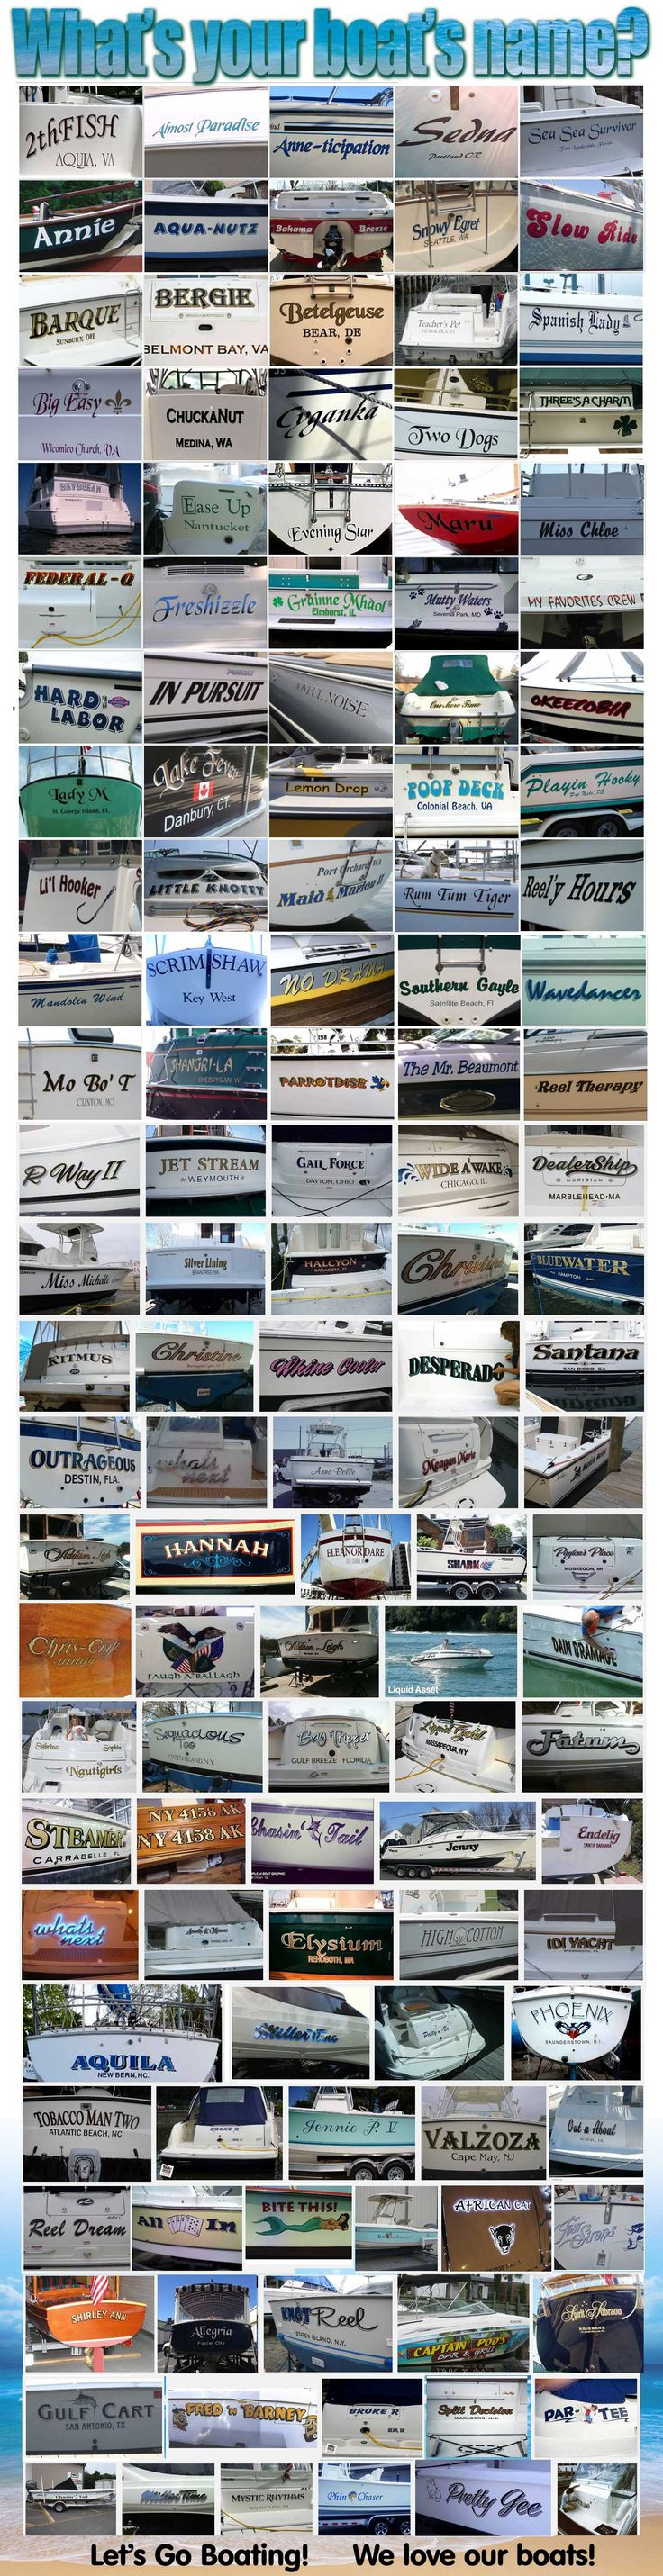 Boat names we love our boats and we love seeing all the creative names